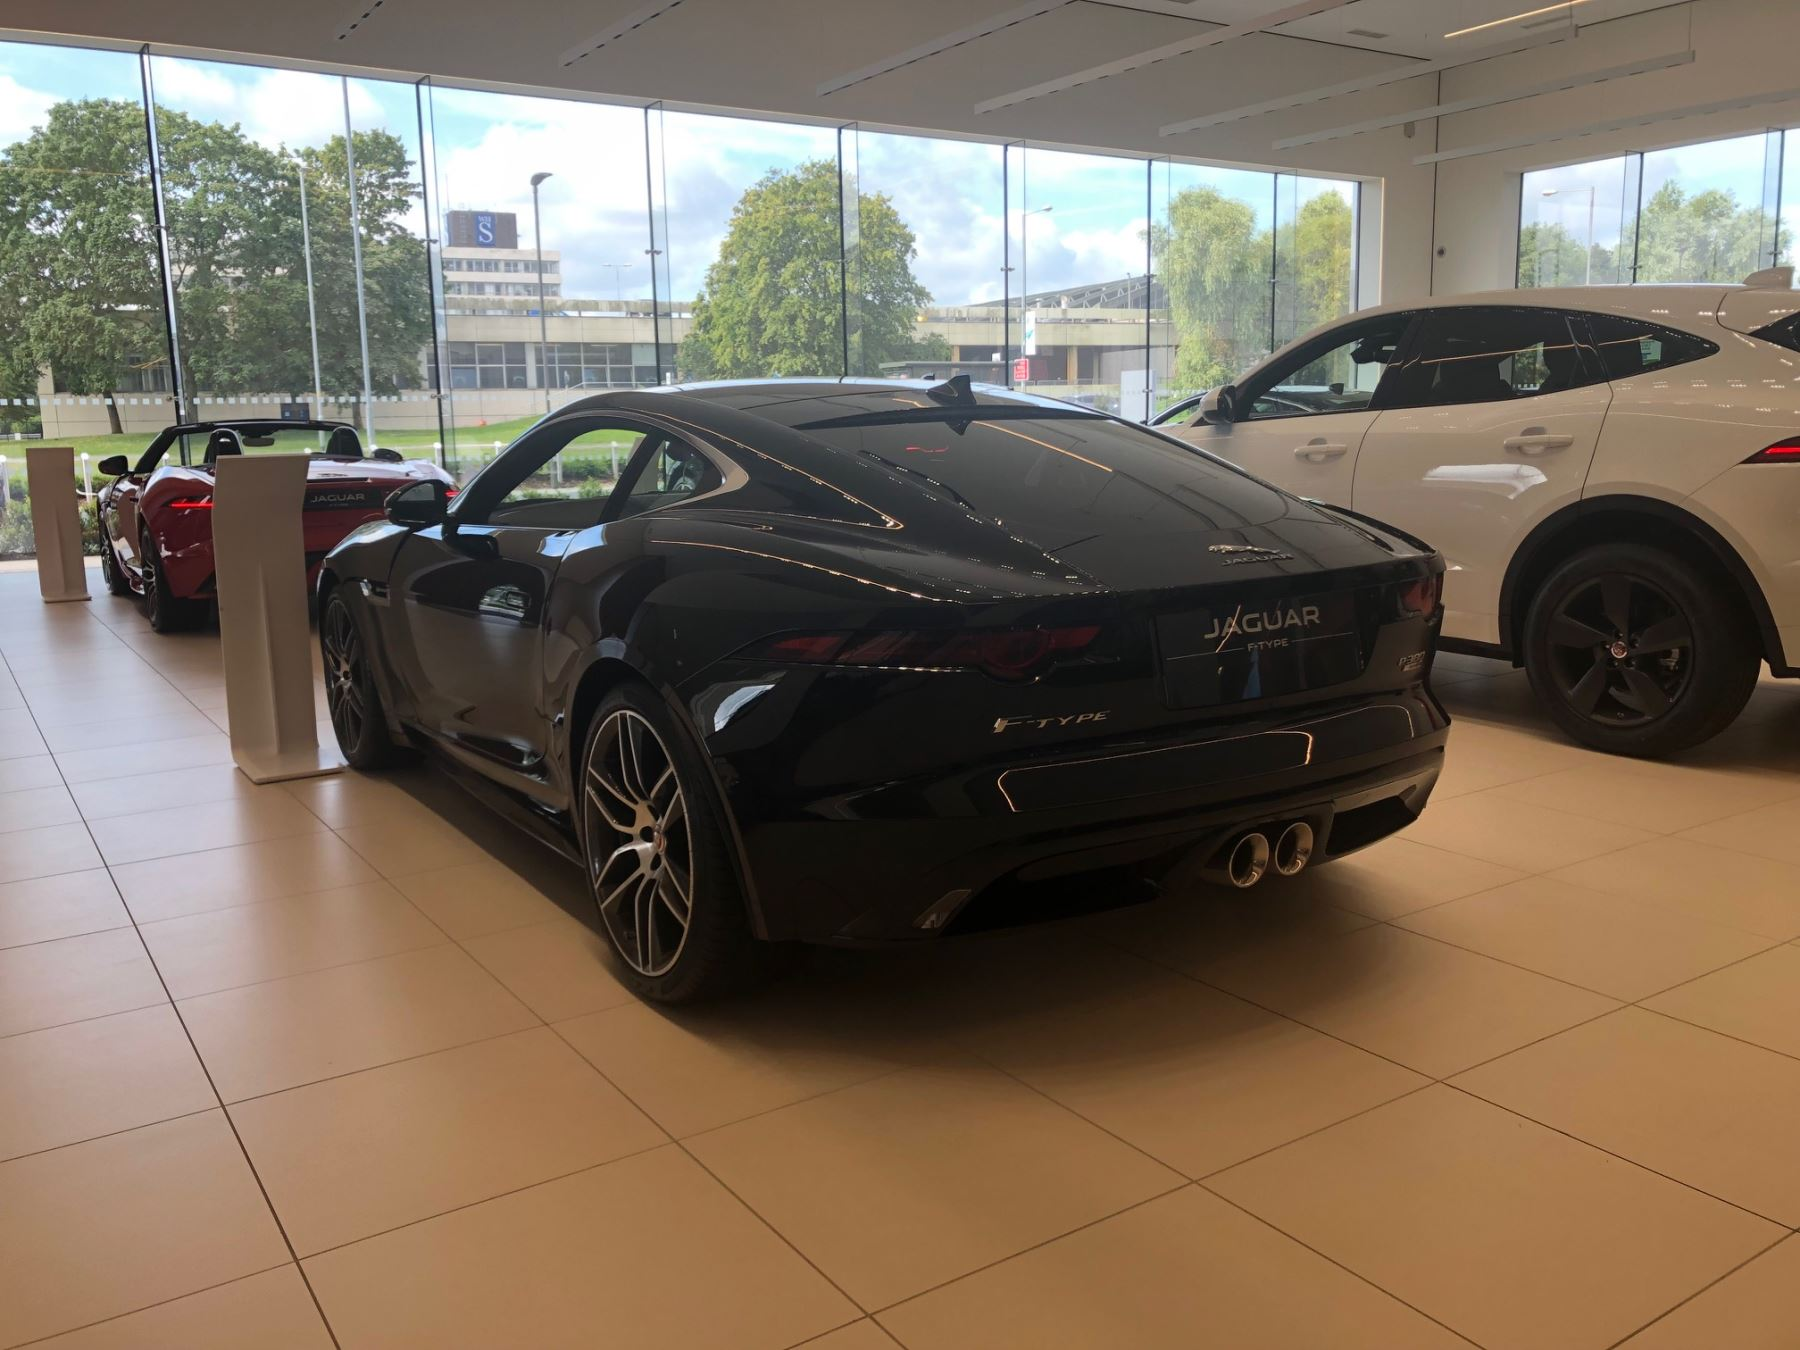 Jaguar F-TYPE 3.0 [380] Supercharged V6 R-Dynamic AWD image 3